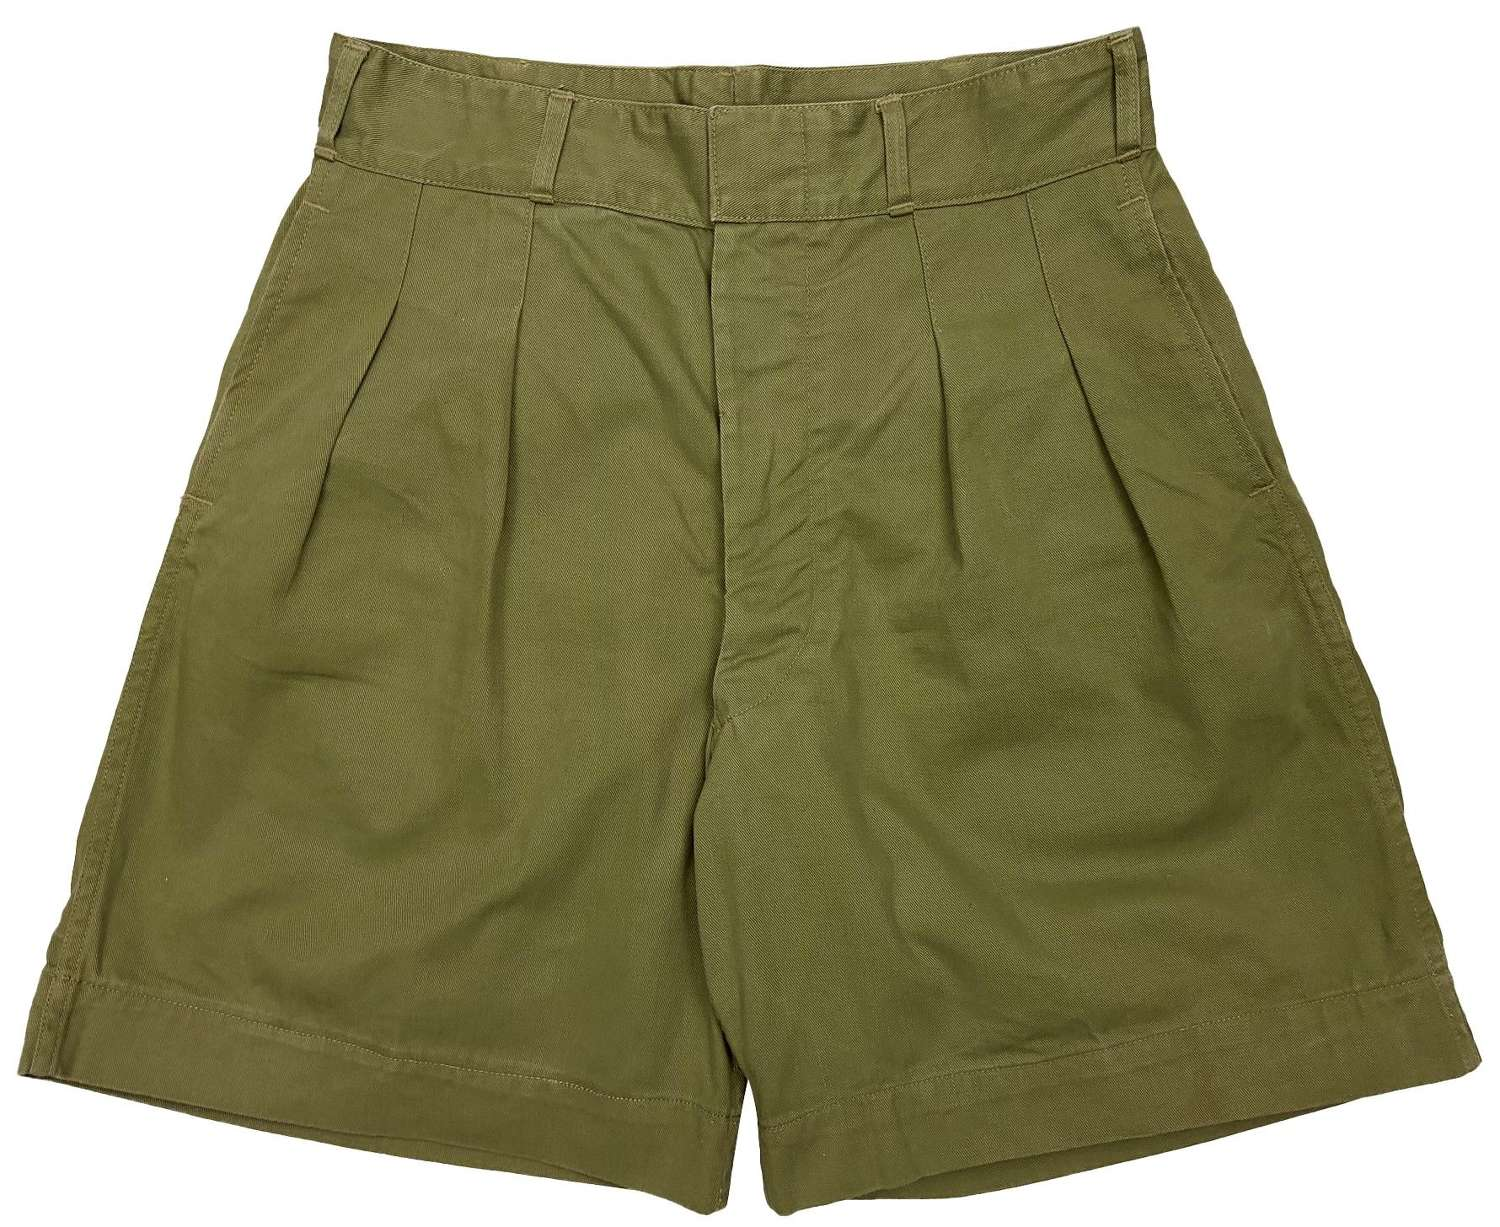 Original 1946 Dated Canadian Khaki Drill Shorts